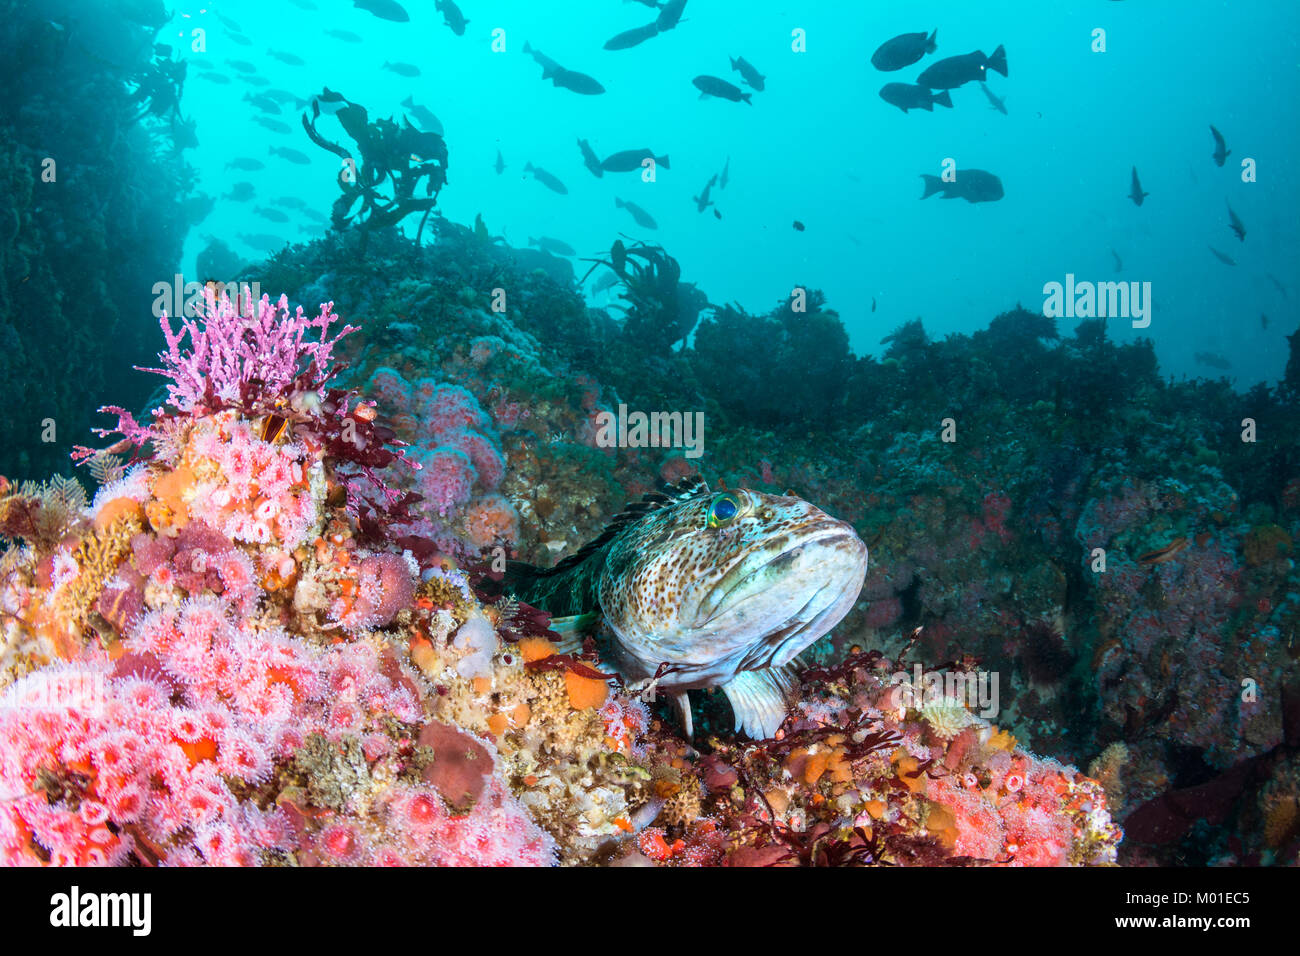 A bed of strawberry anemones surrounds a lingcod while it rests on a reef. Stock Photo